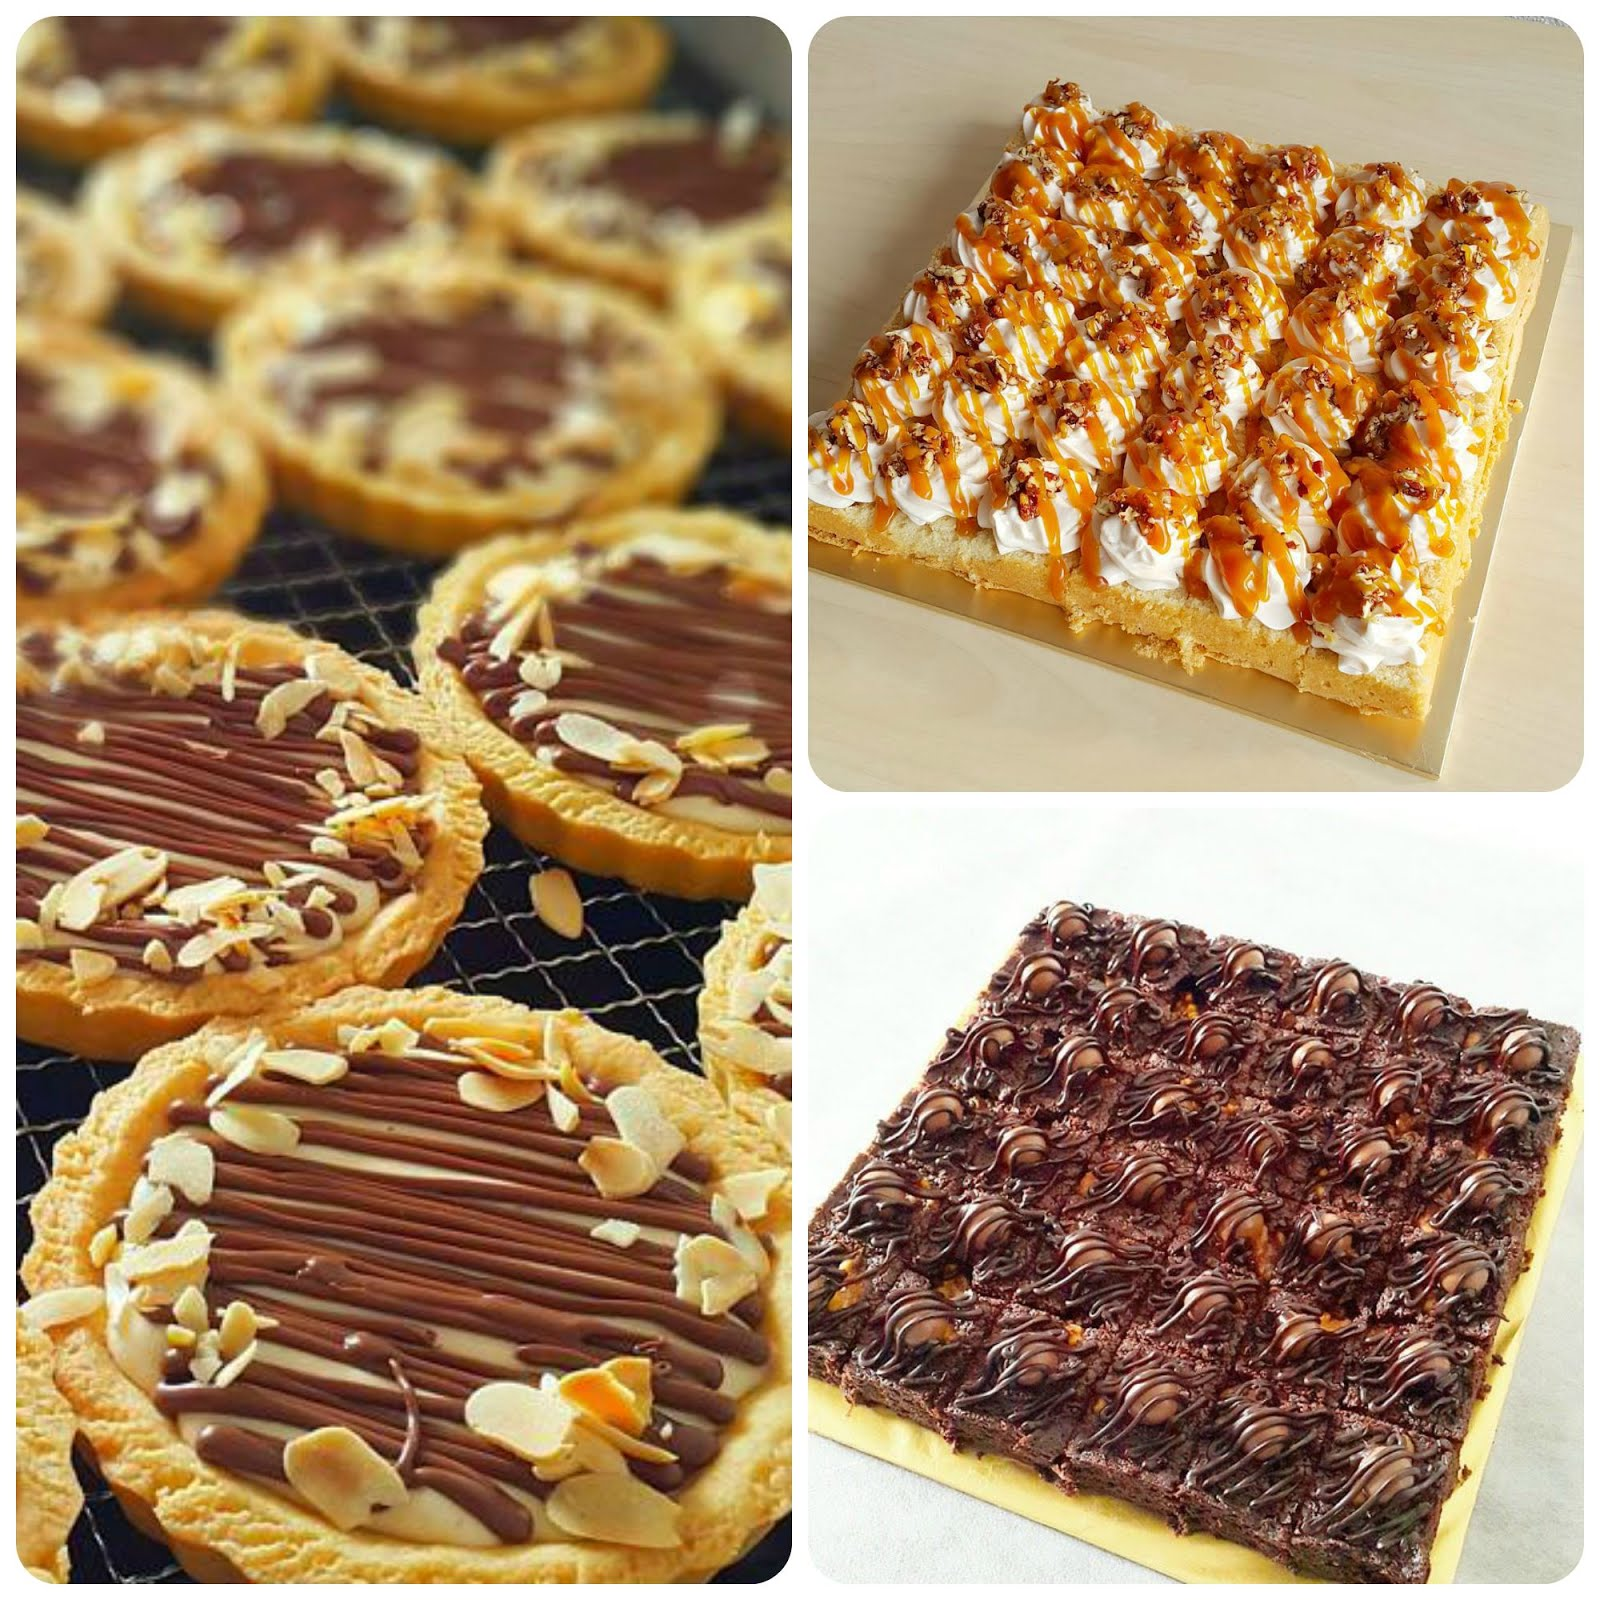 KELAS NUTELLA CHEESETART, DOUBLE CHOCOLATE BROWNIES & PECAN BUTTERSCOTCH SLICE